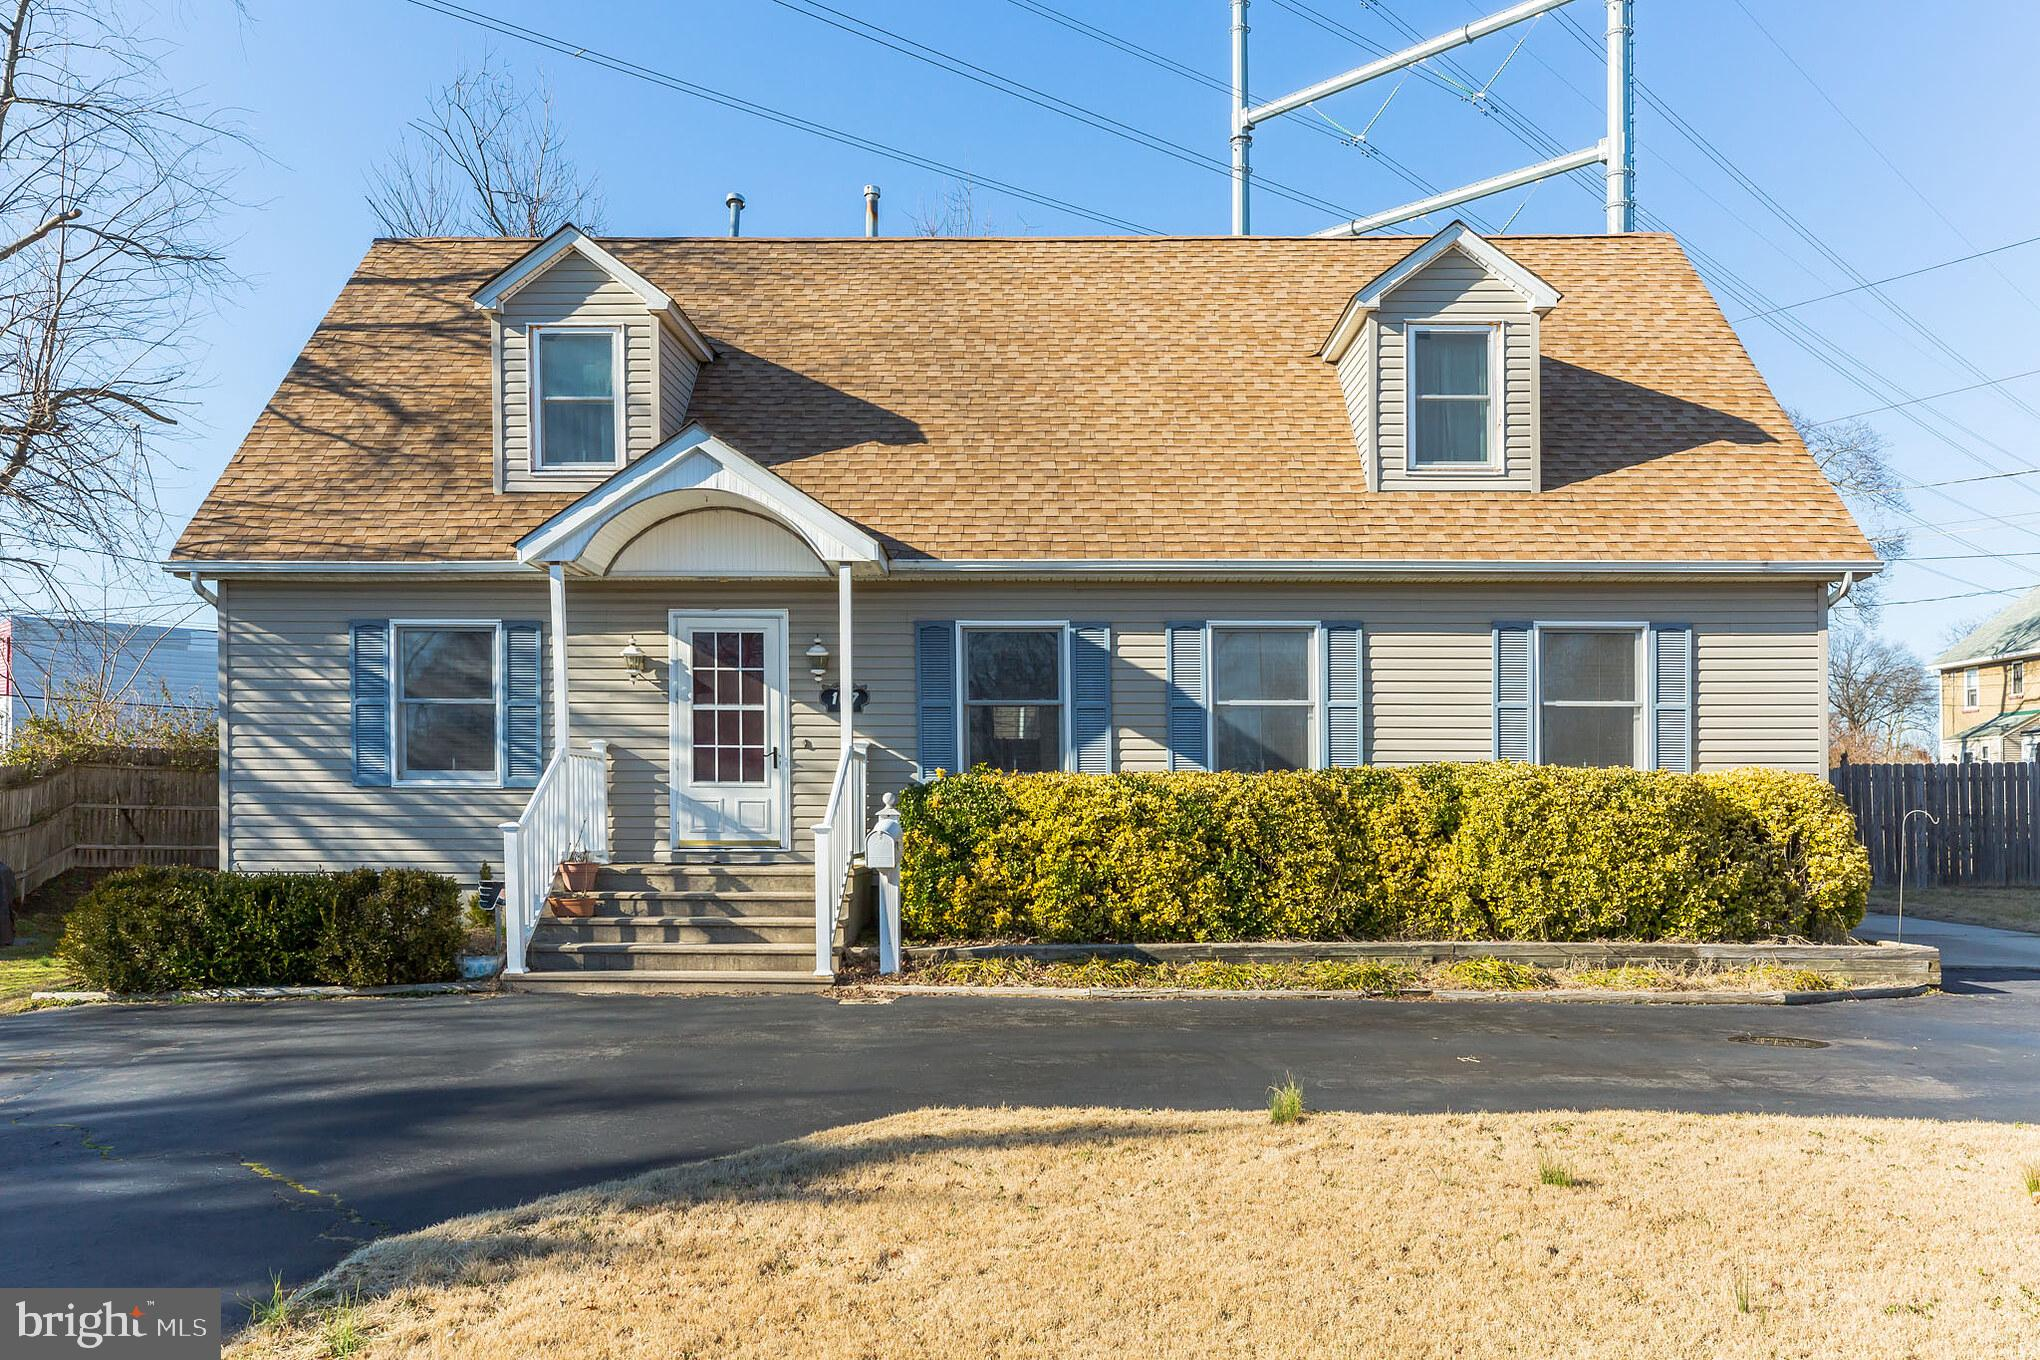 107 N WILSON AVENUE, BROOKLAWN, NJ 08030